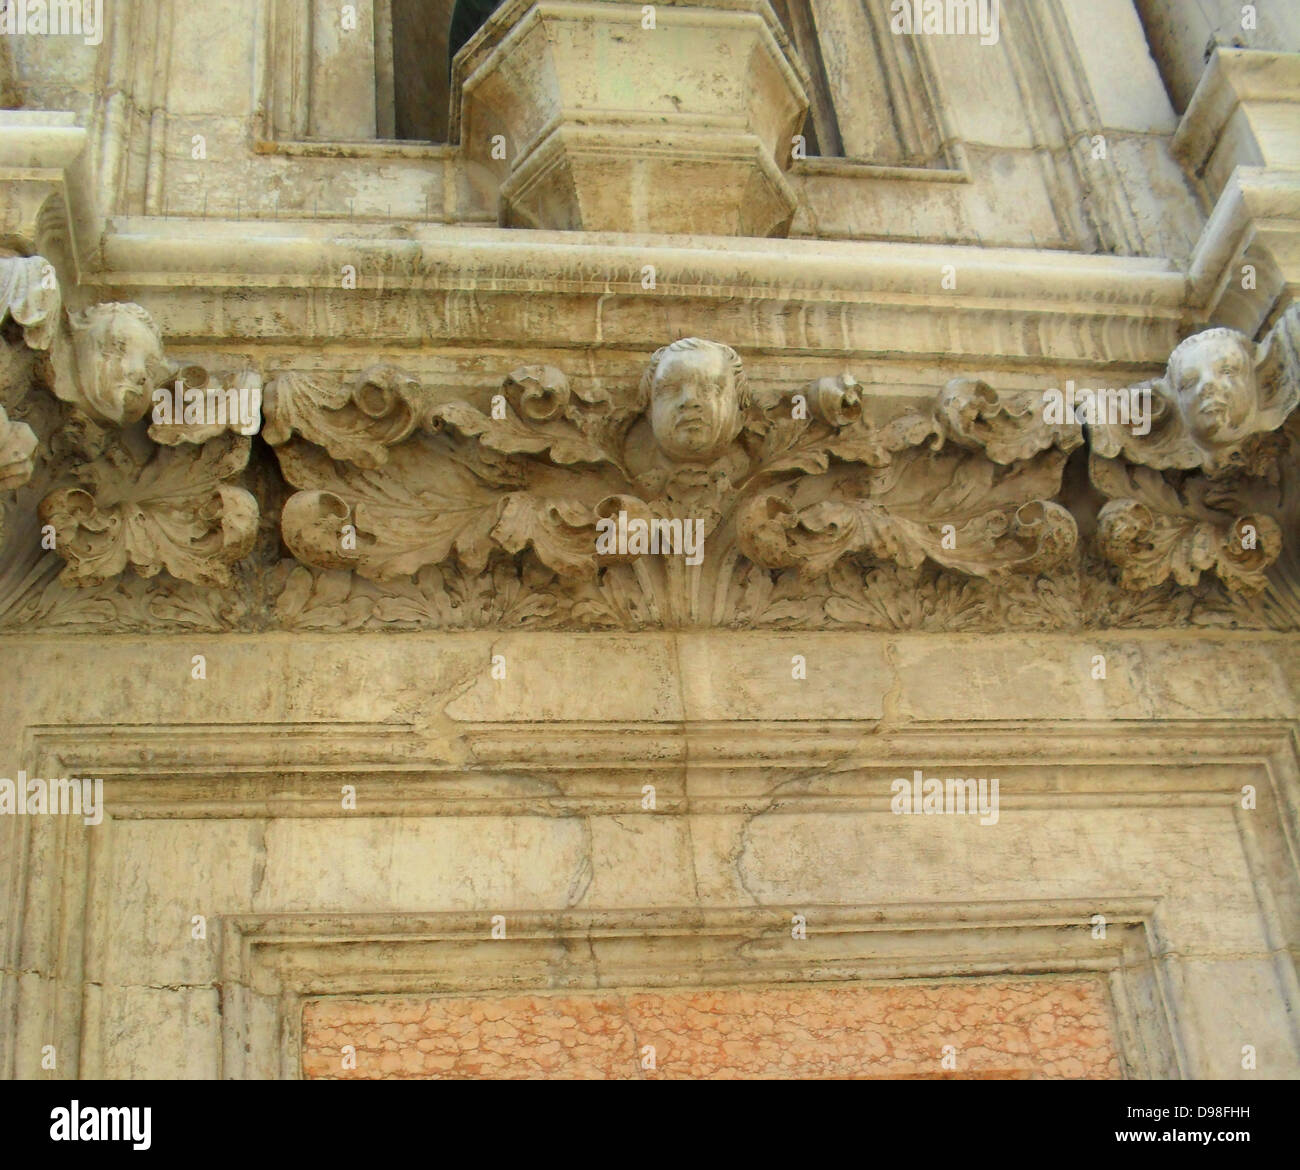 (Detail) architectural feature on the facade of the Doge's Palace in Venice, Italy. The palace was the residence - Stock Image